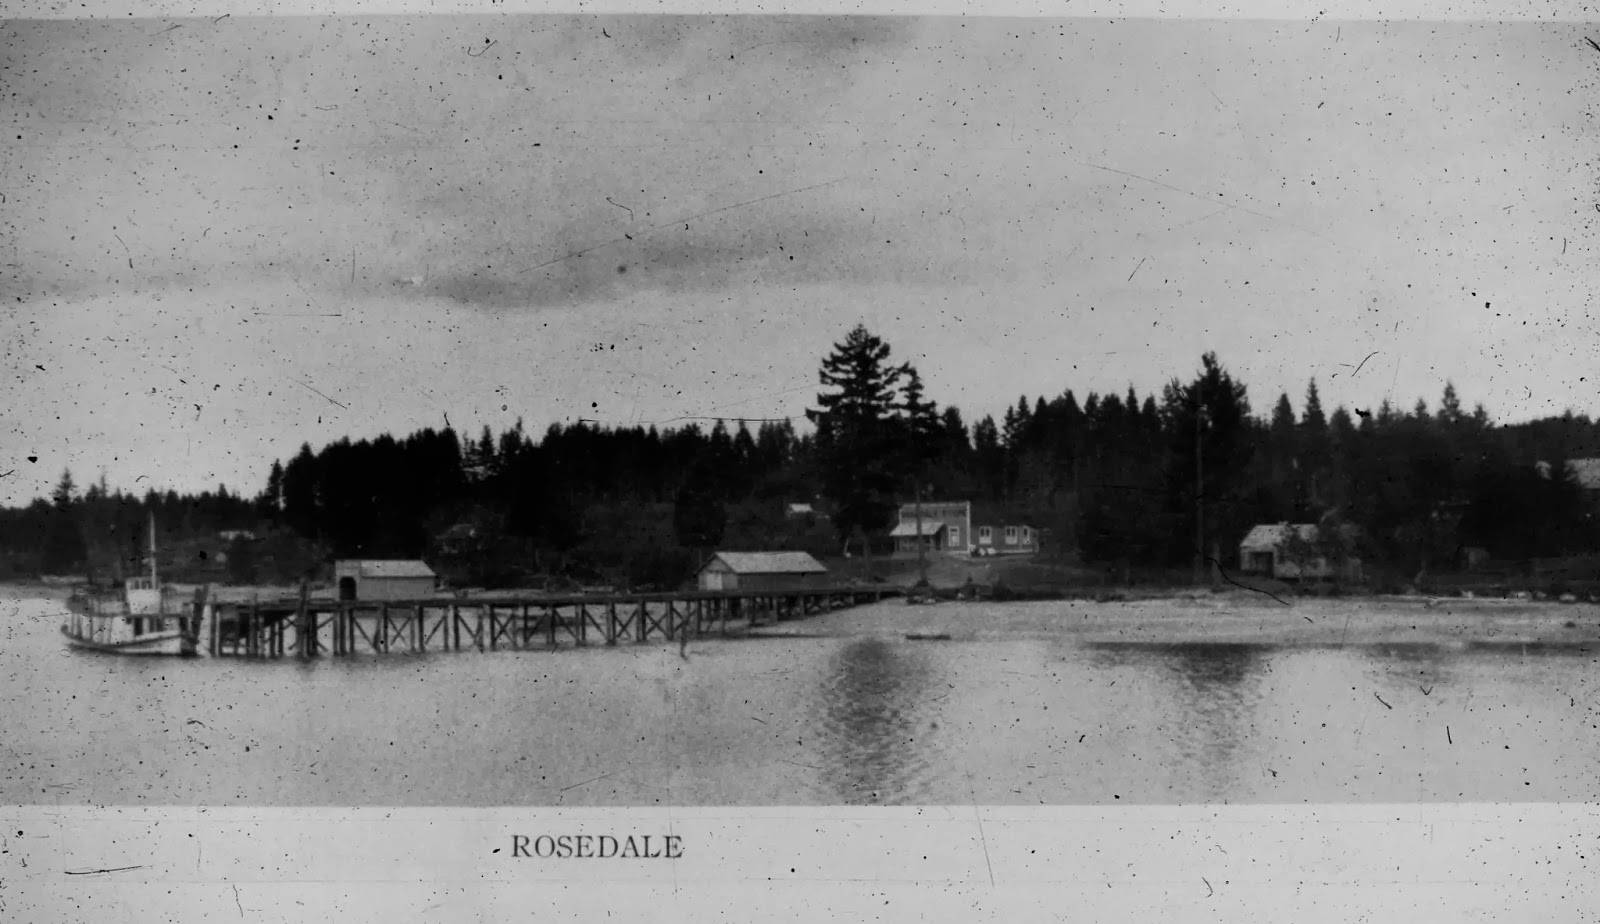 Harbor History Museum Blog: Early Days at Rosedale as read ...